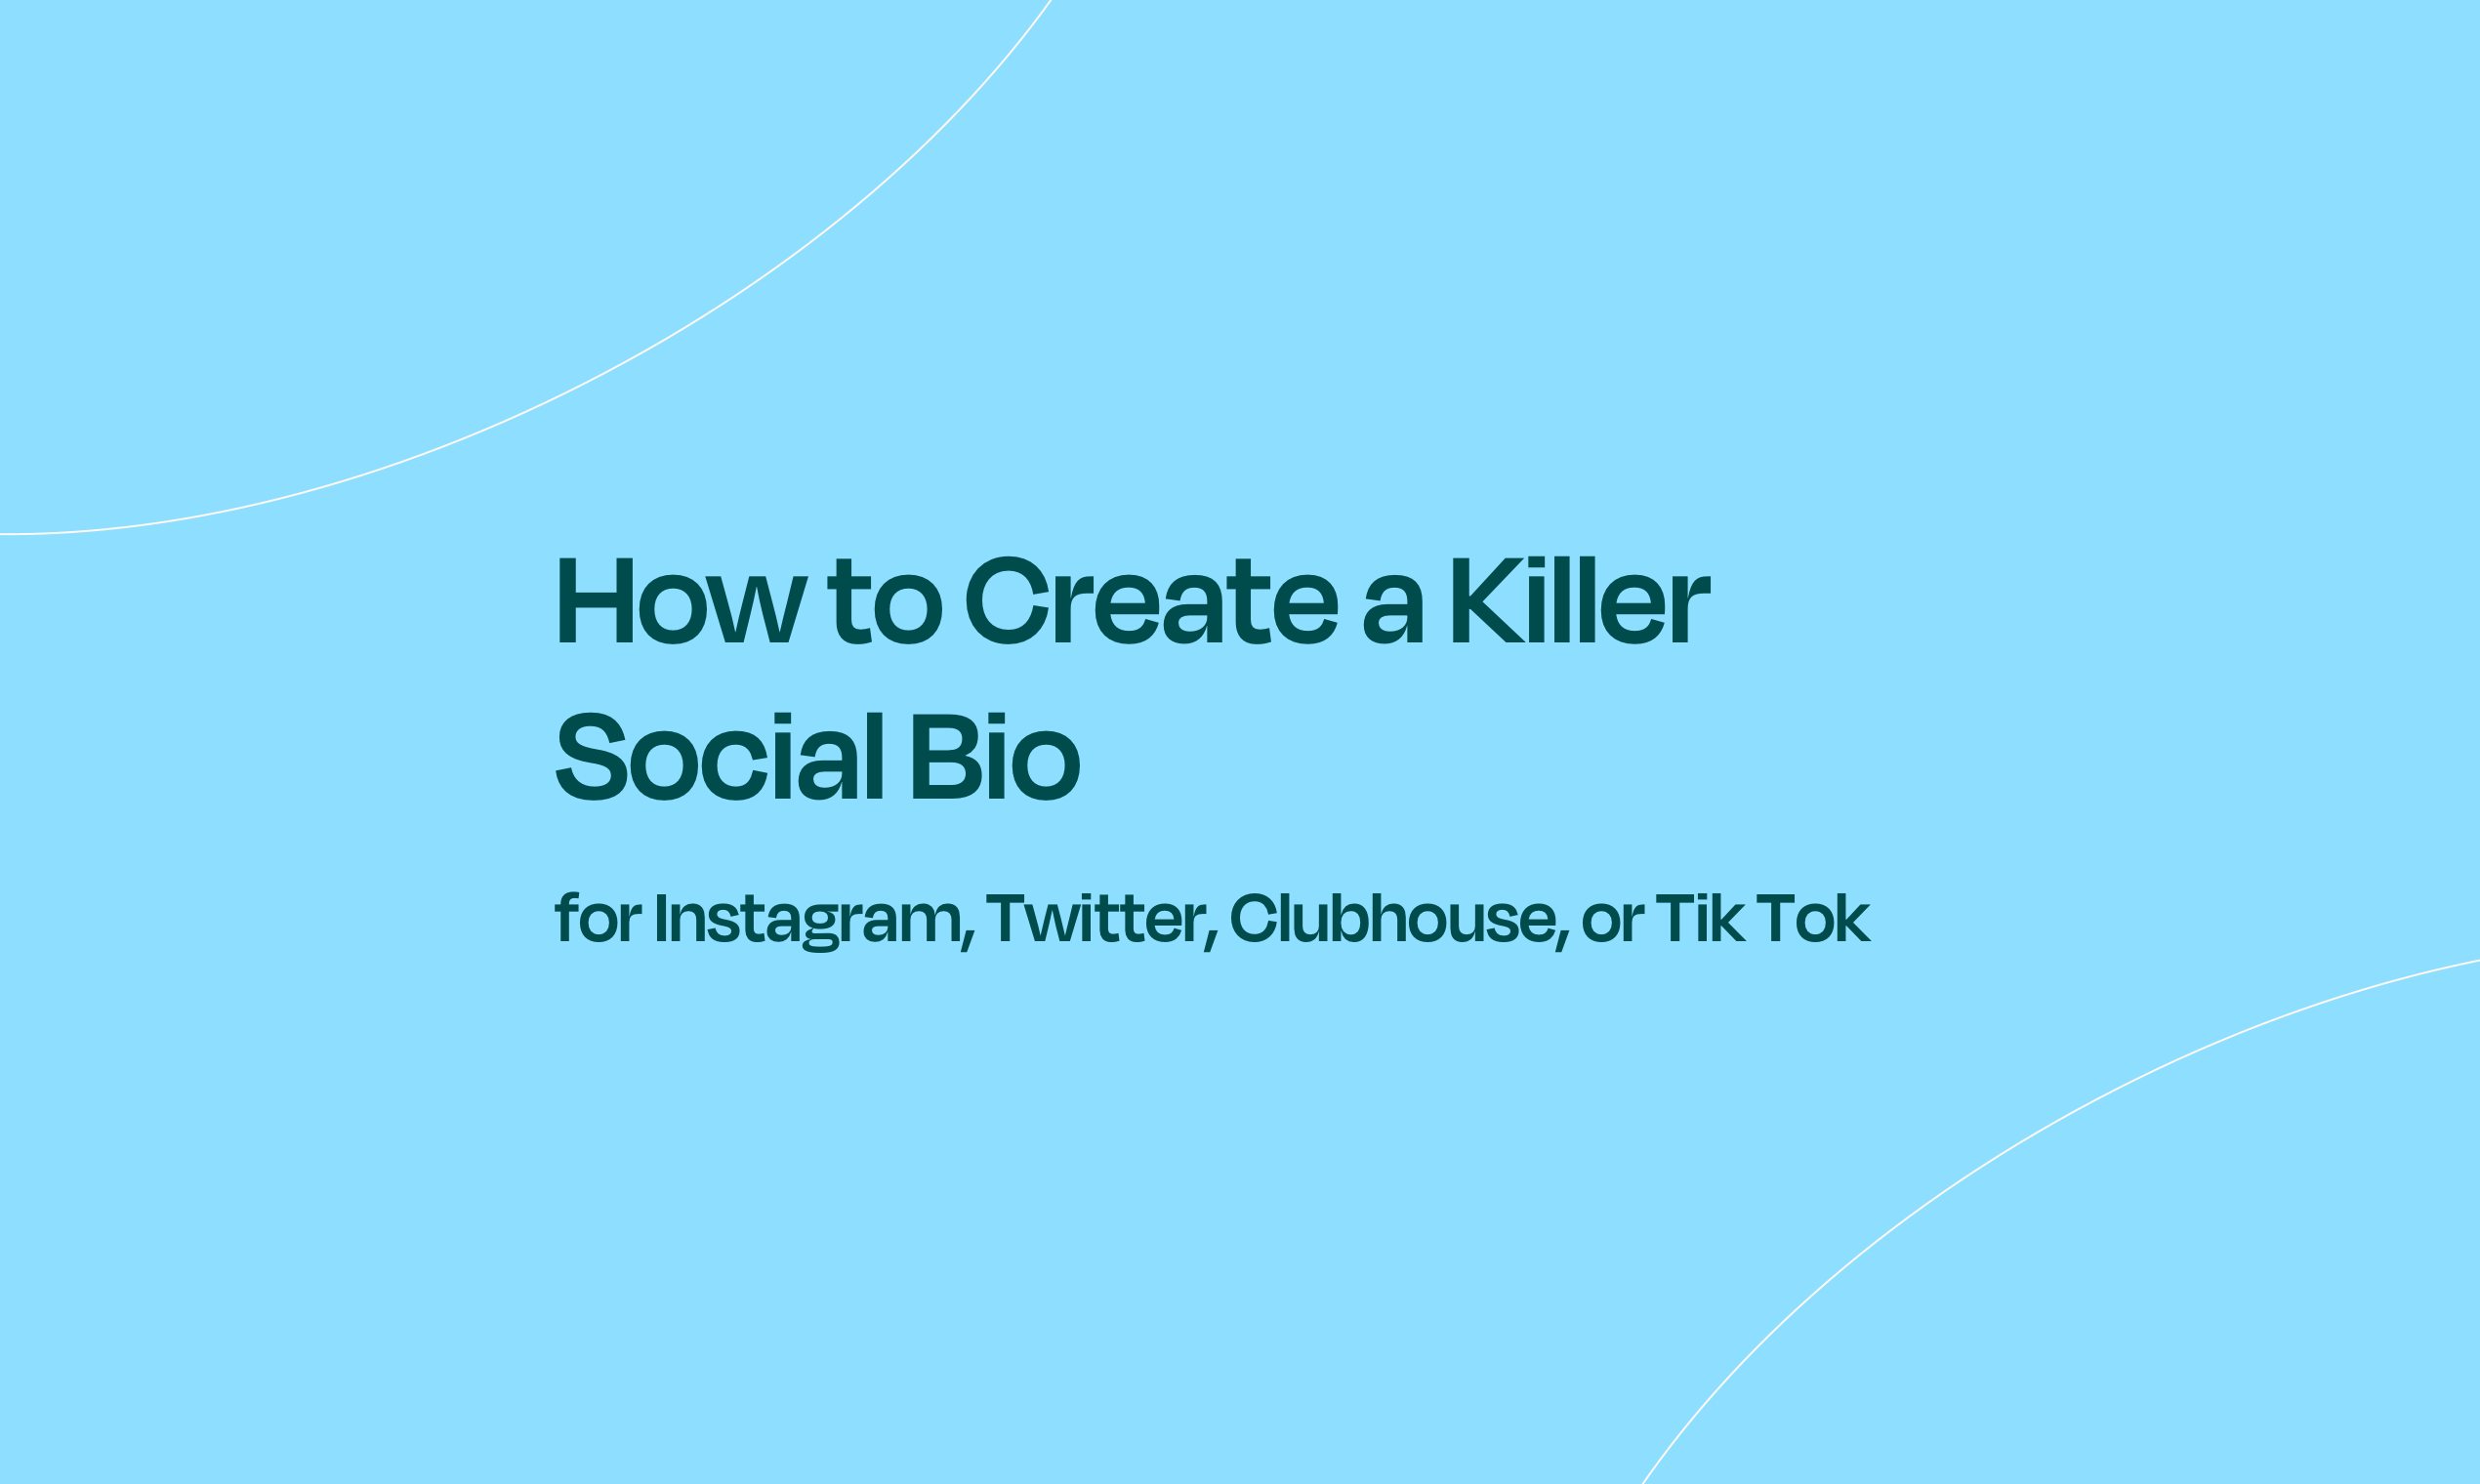 How to Create a Killer Social Bio for Instagram, Twitter, Clubhouse, or Tik Tok